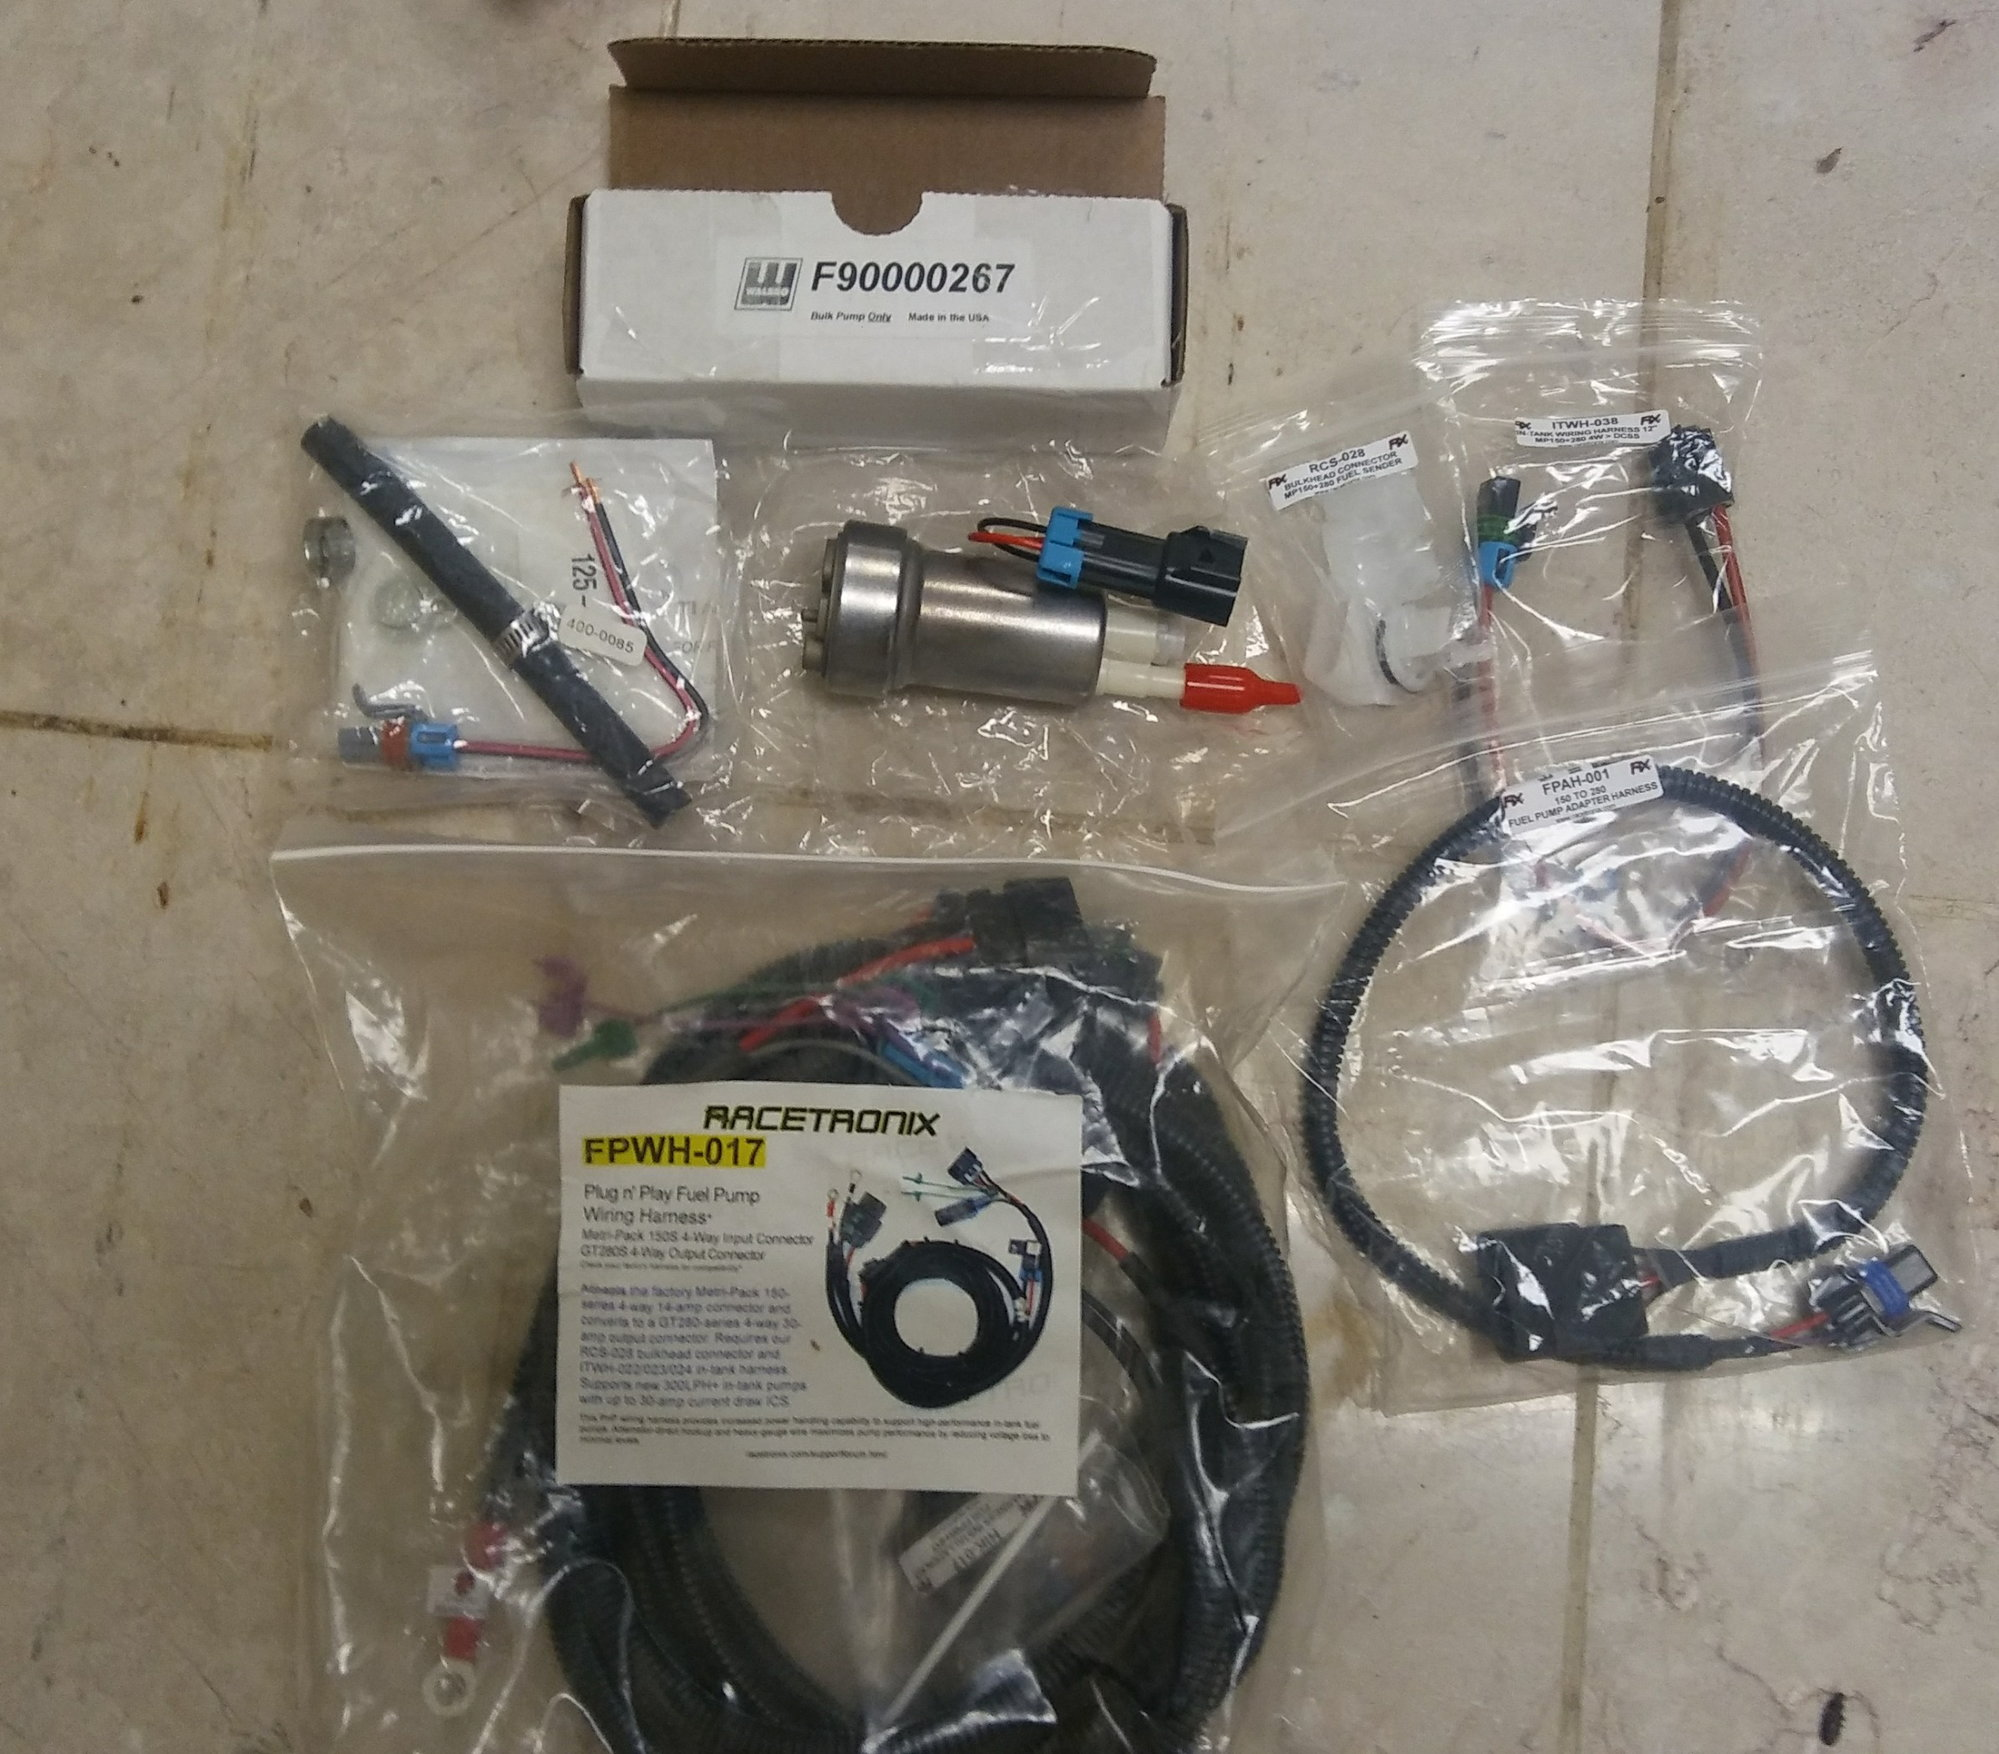 Racetronix Fuel Pump Wire Harness  Denso Fuel Pump, K&n Fuel